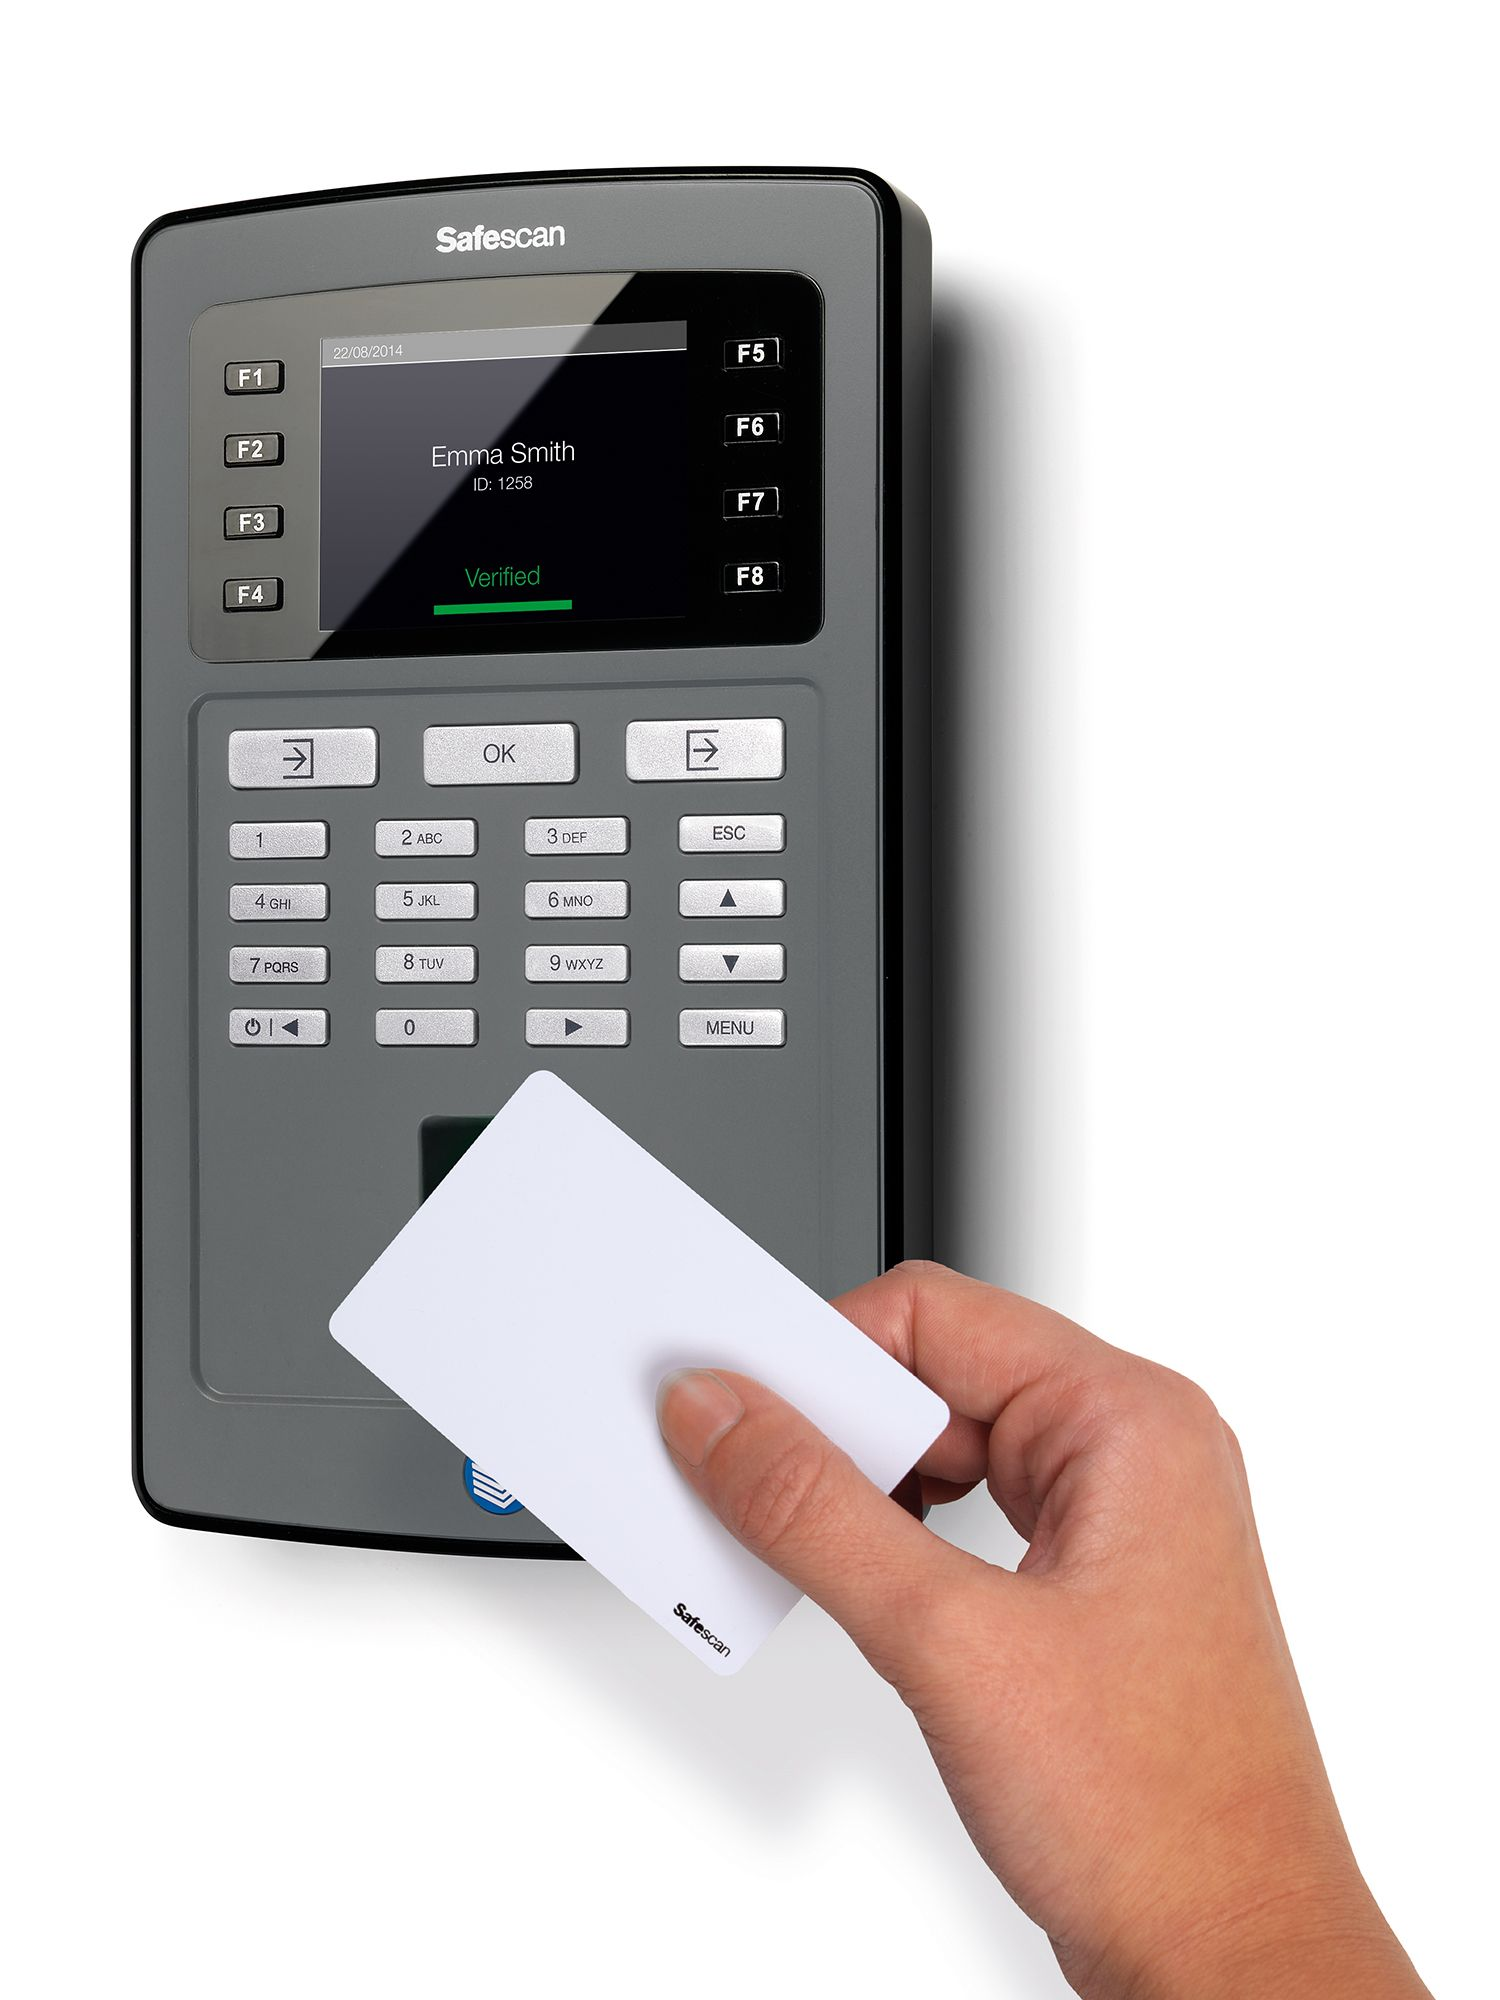 Safescan TA8035 WiFi Clocking In System with Fingerprint Sensor.